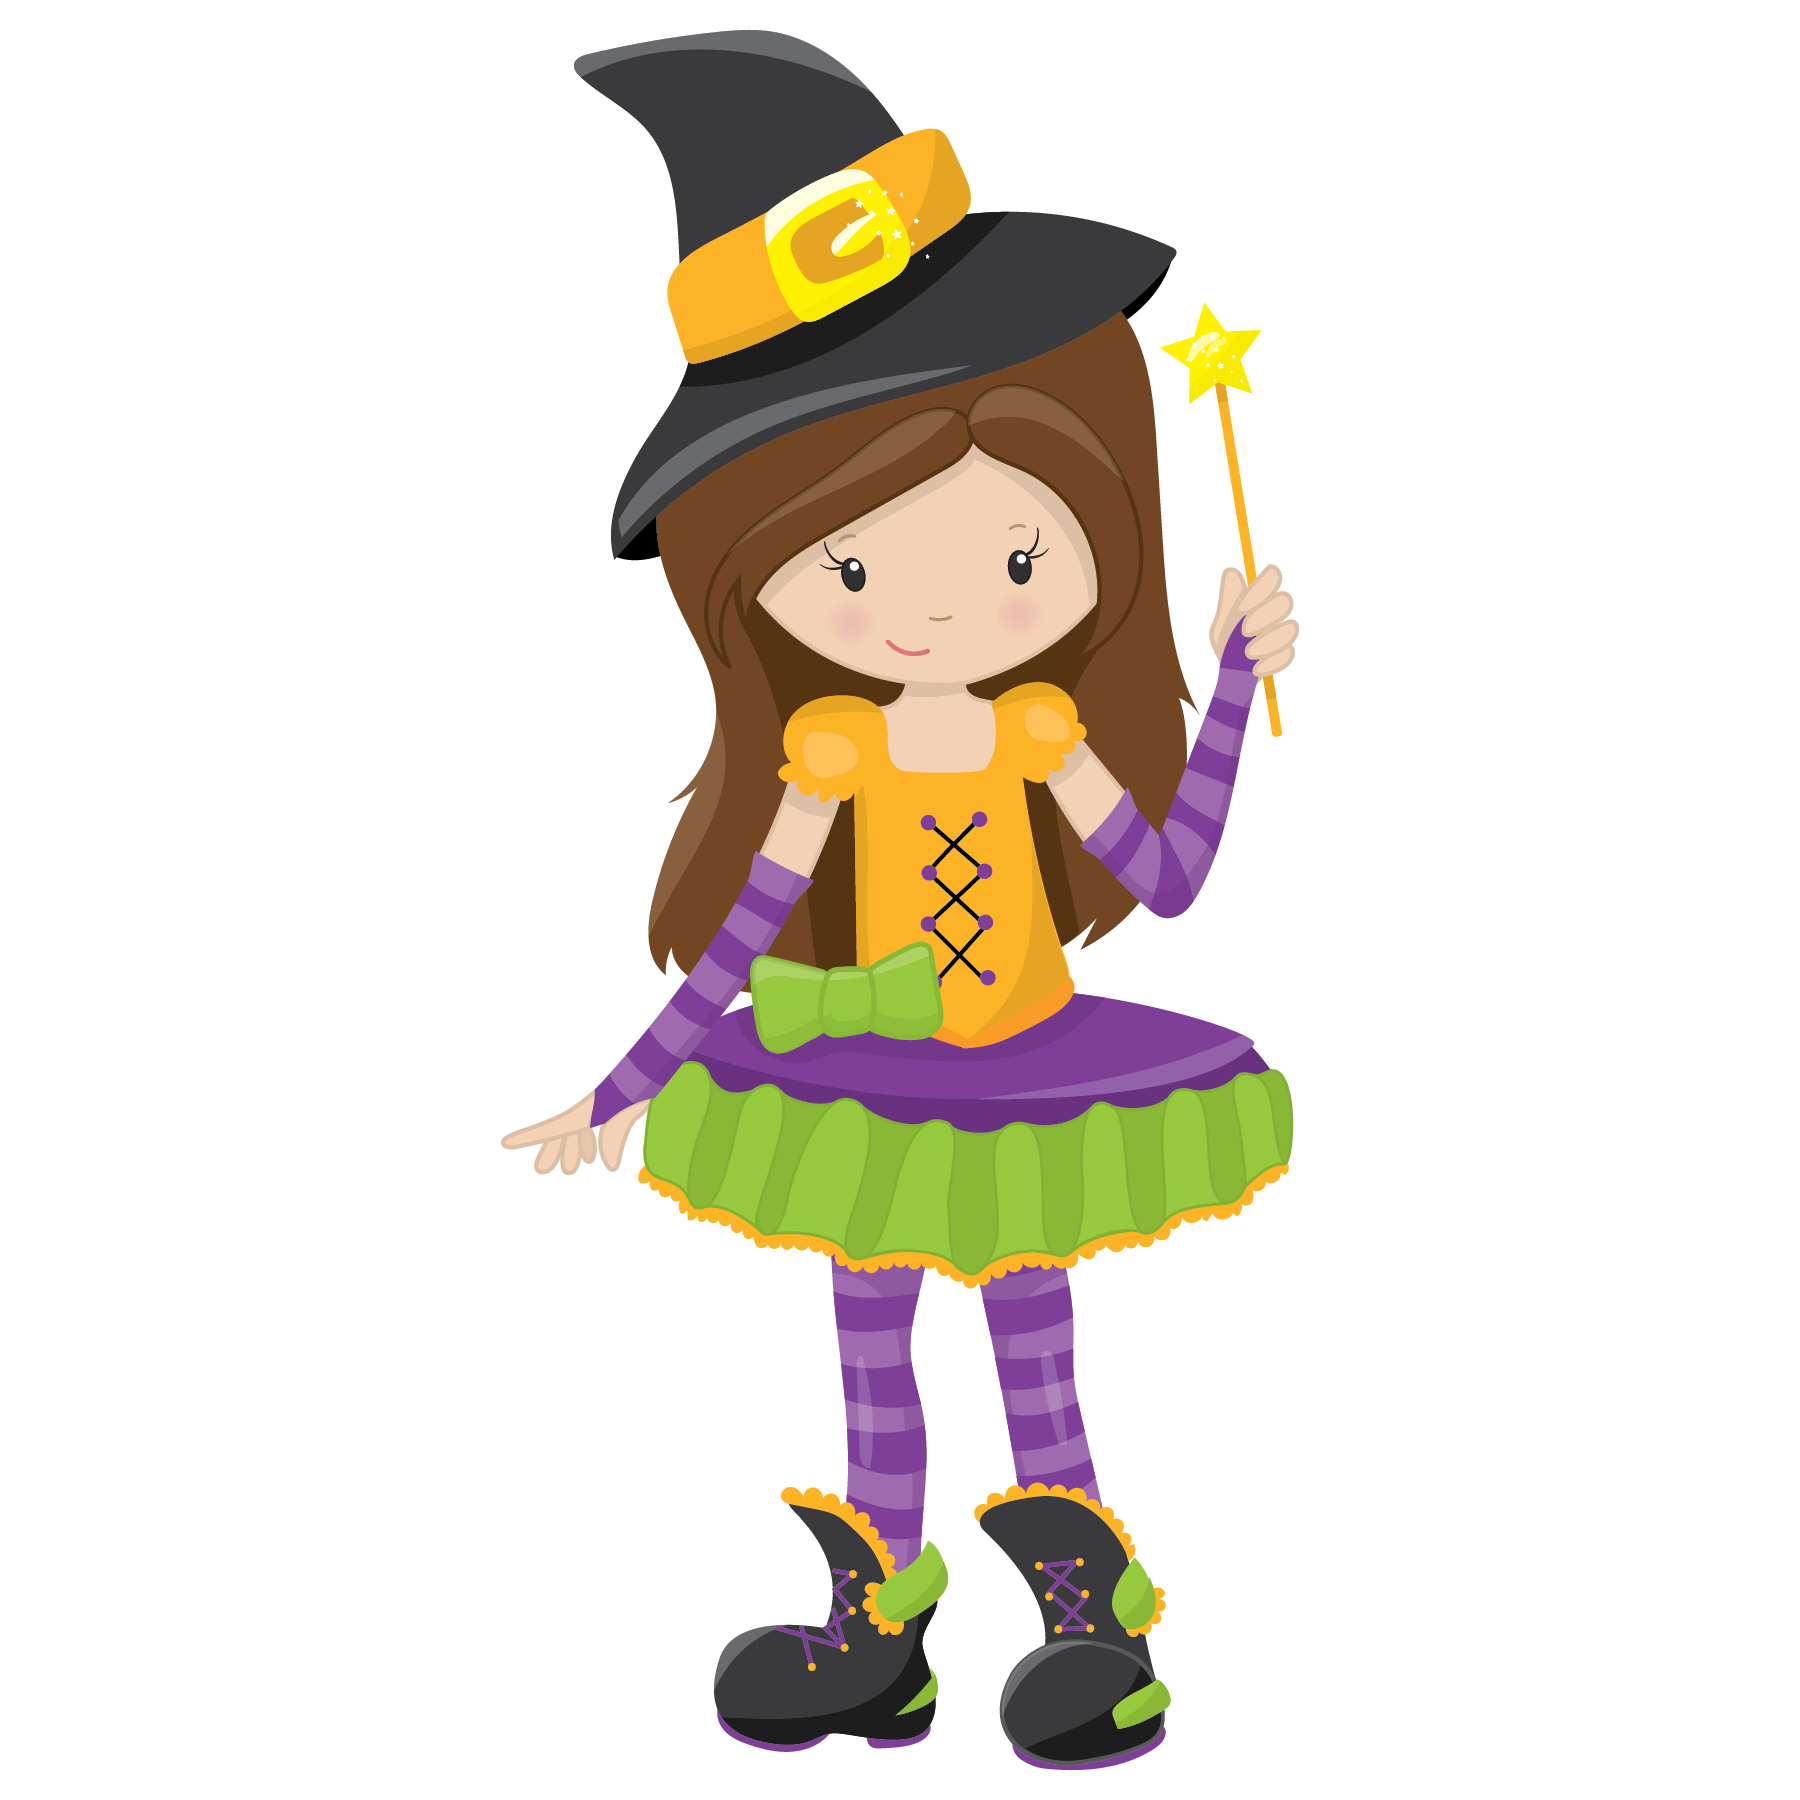 Halloween children in costumes clipart banner freeuse library Halloween Ready – The Little Puddins Blog. banner freeuse library